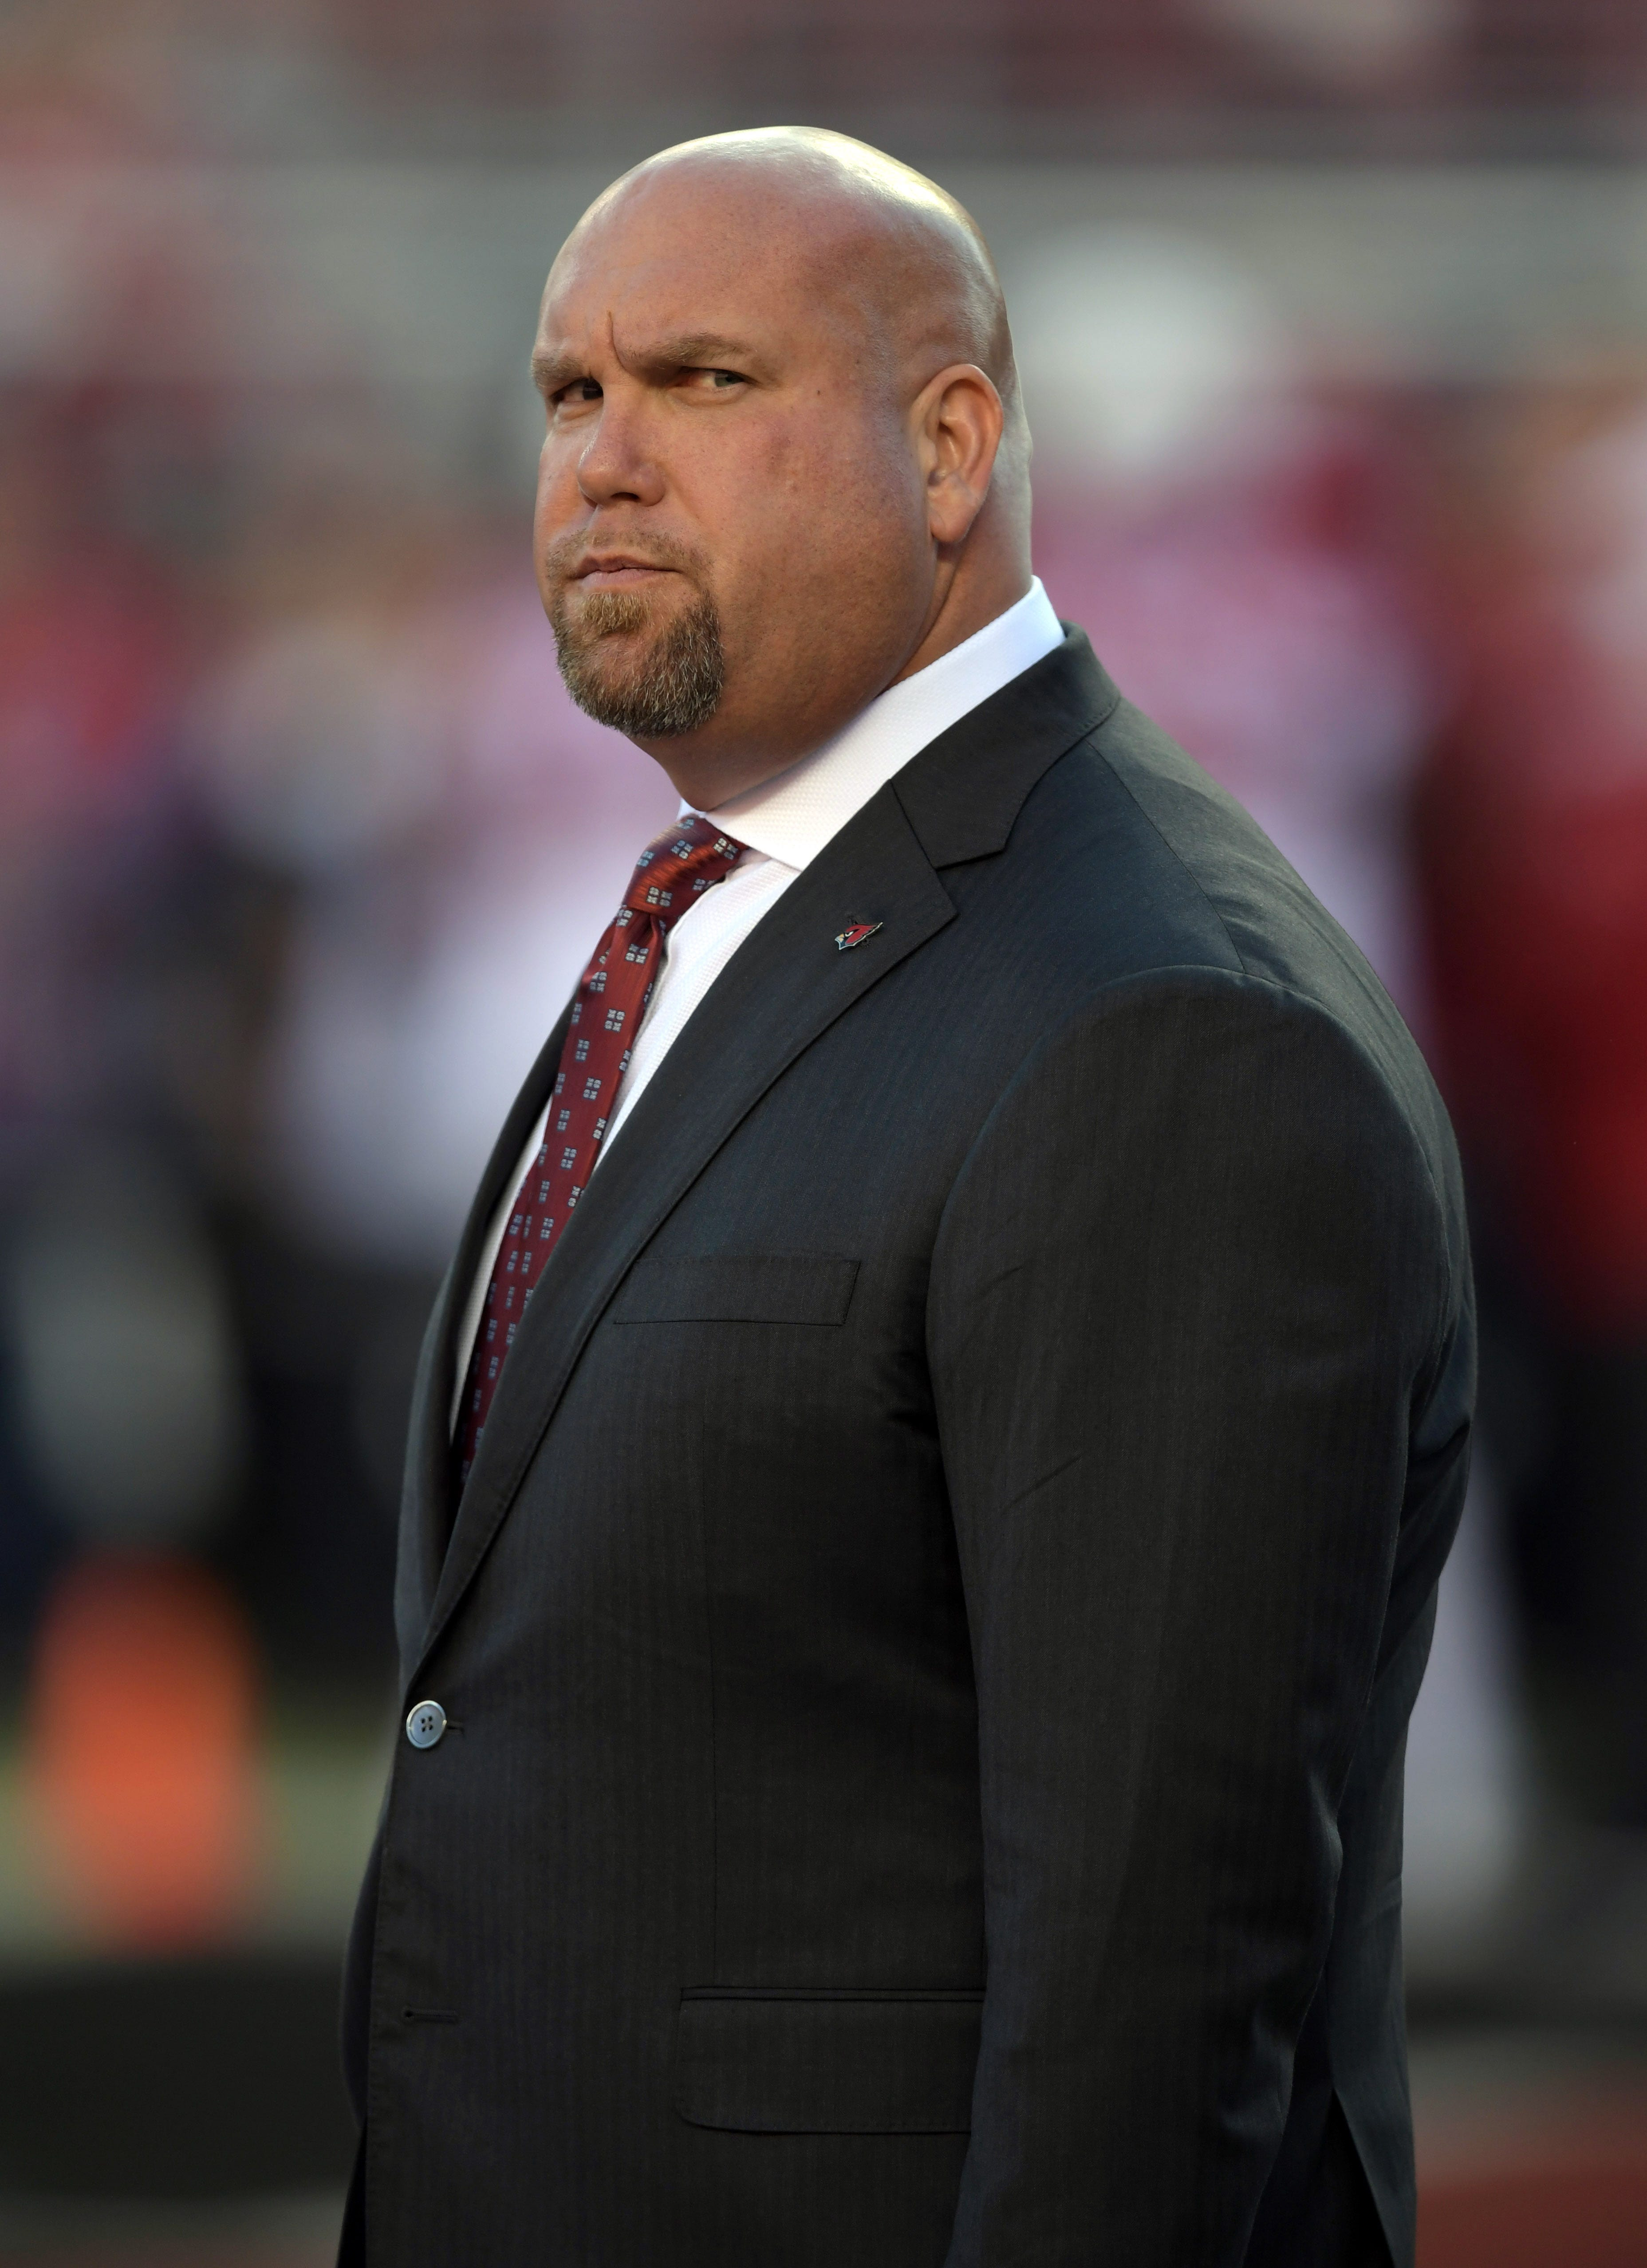 Cardinals GM Steve Keim suspended, fined after pleading guilty to extreme DUI